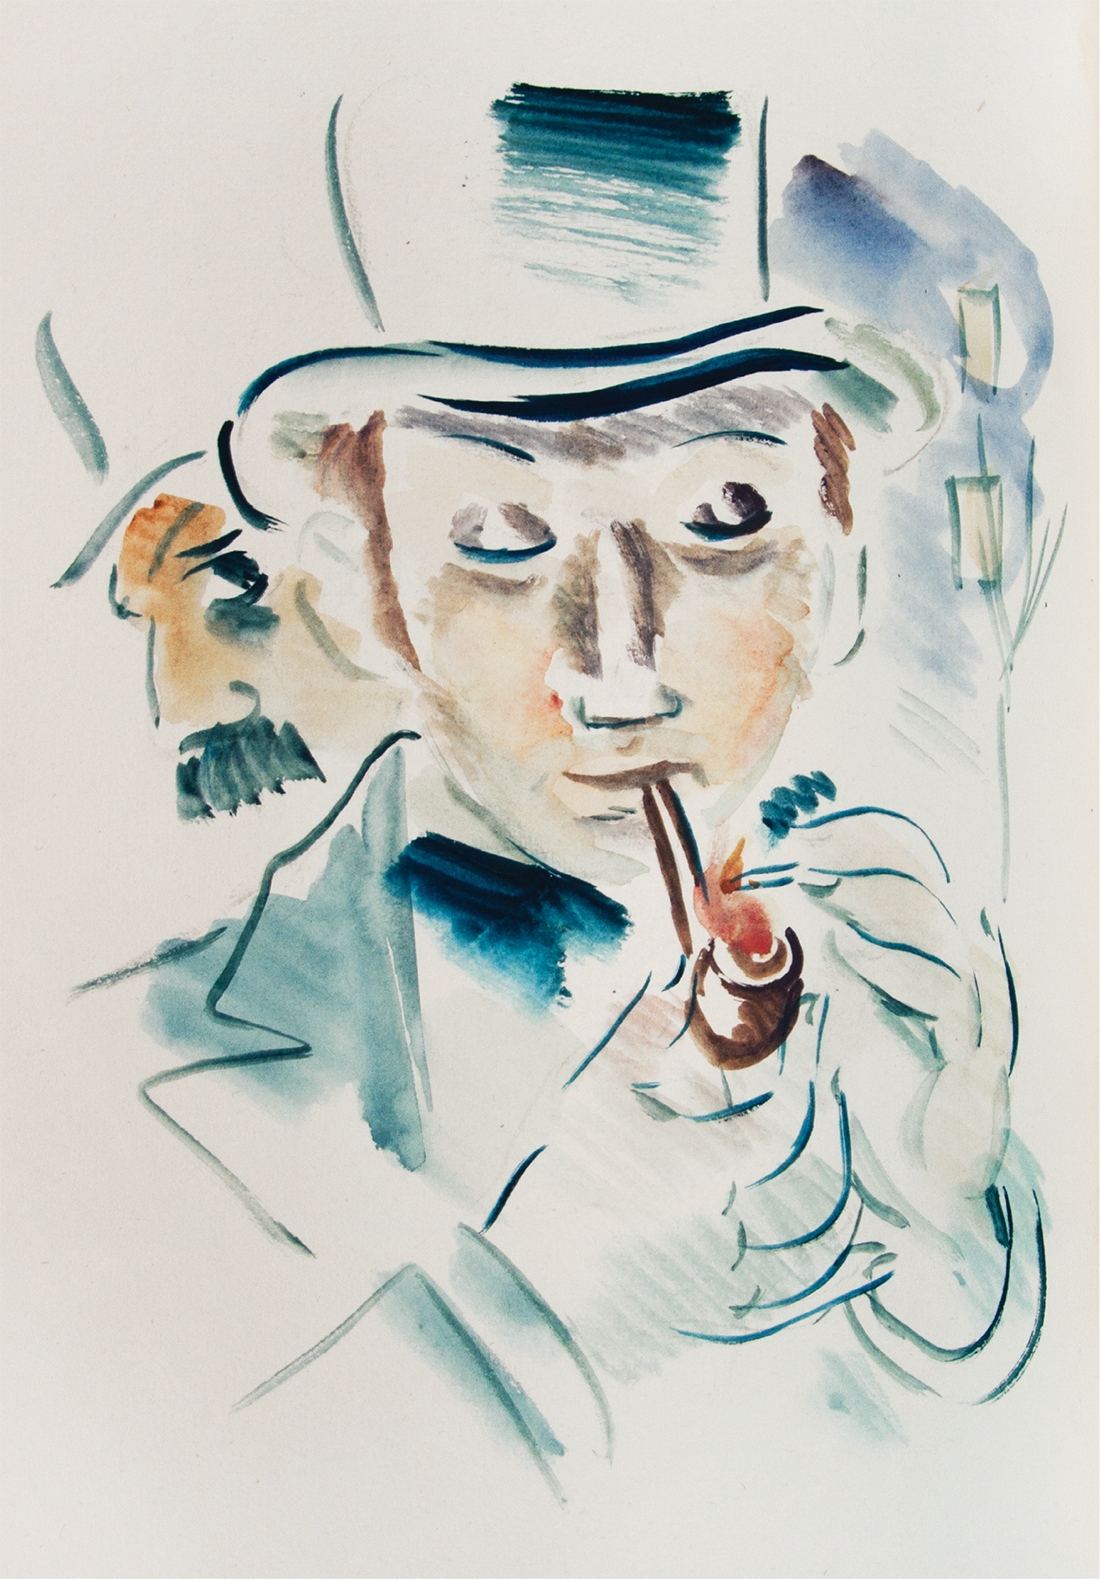 The program cover for the Verlaine celebration featured this watercolor illustration by artist László Barta (1902–1961) under the name of Brutus, for a 1936 edition of a collection of Verlaine's poems titled Hombres.